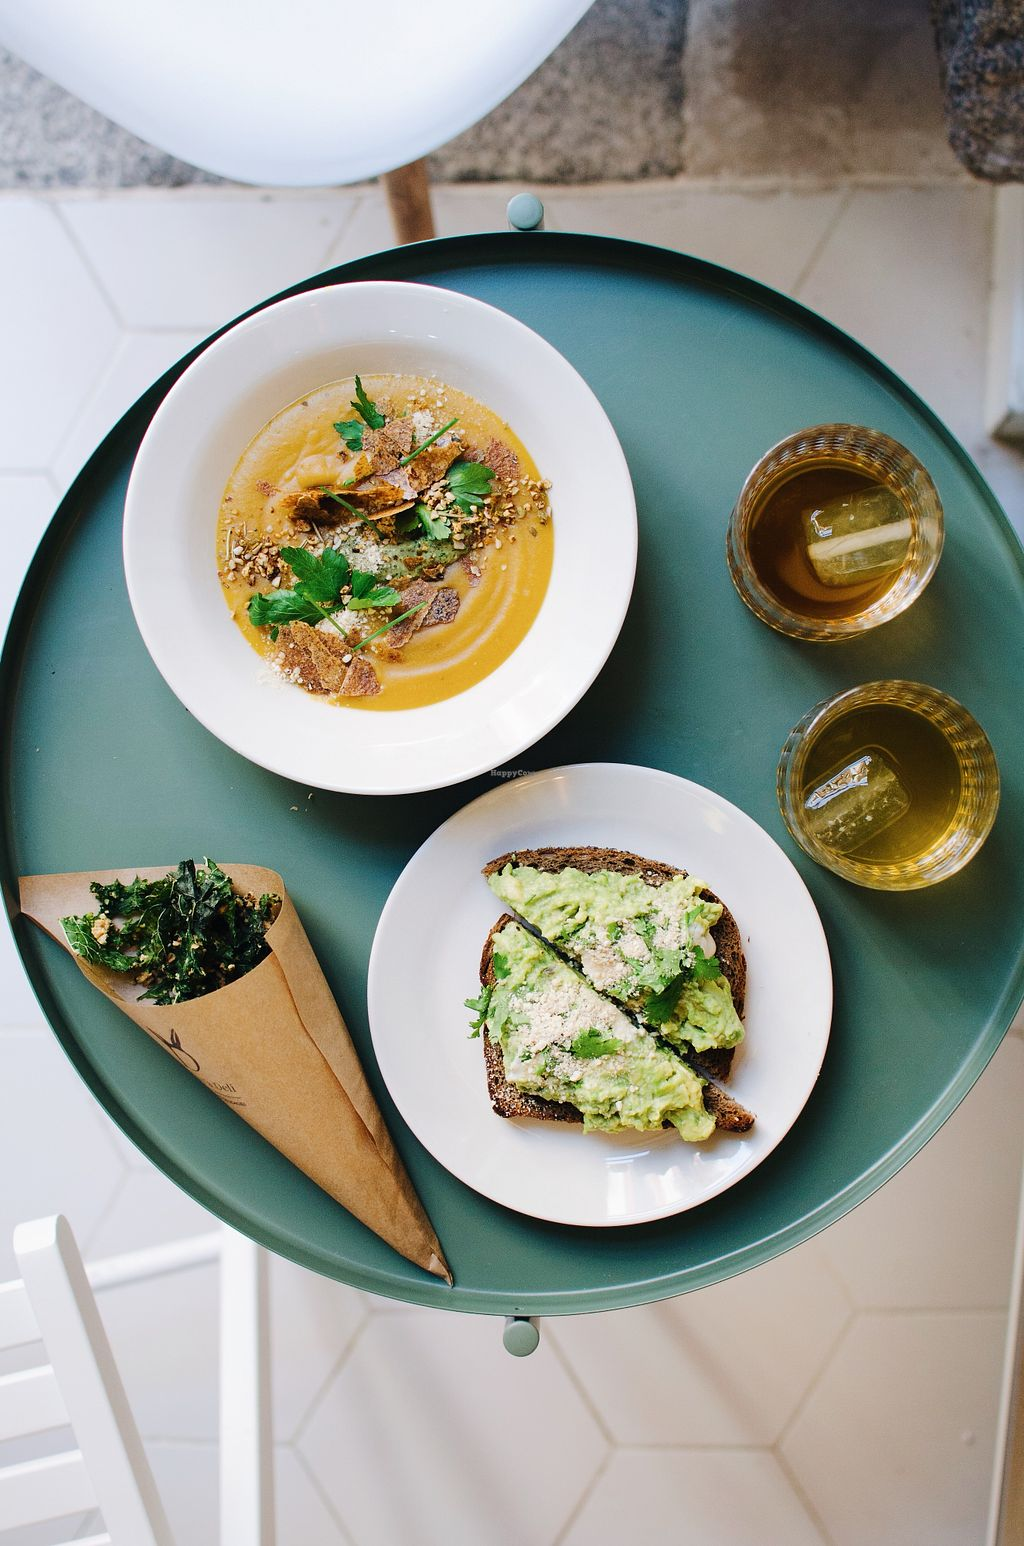 """Photo of Bunny's Deli  by <a href=""""/members/profile/EricTrusiewicz"""">EricTrusiewicz</a> <br/>Soup, Toast & Kale Chips with Organic Iced Infusion <br/> April 20, 2018  - <a href='/contact/abuse/image/94460/388620'>Report</a>"""